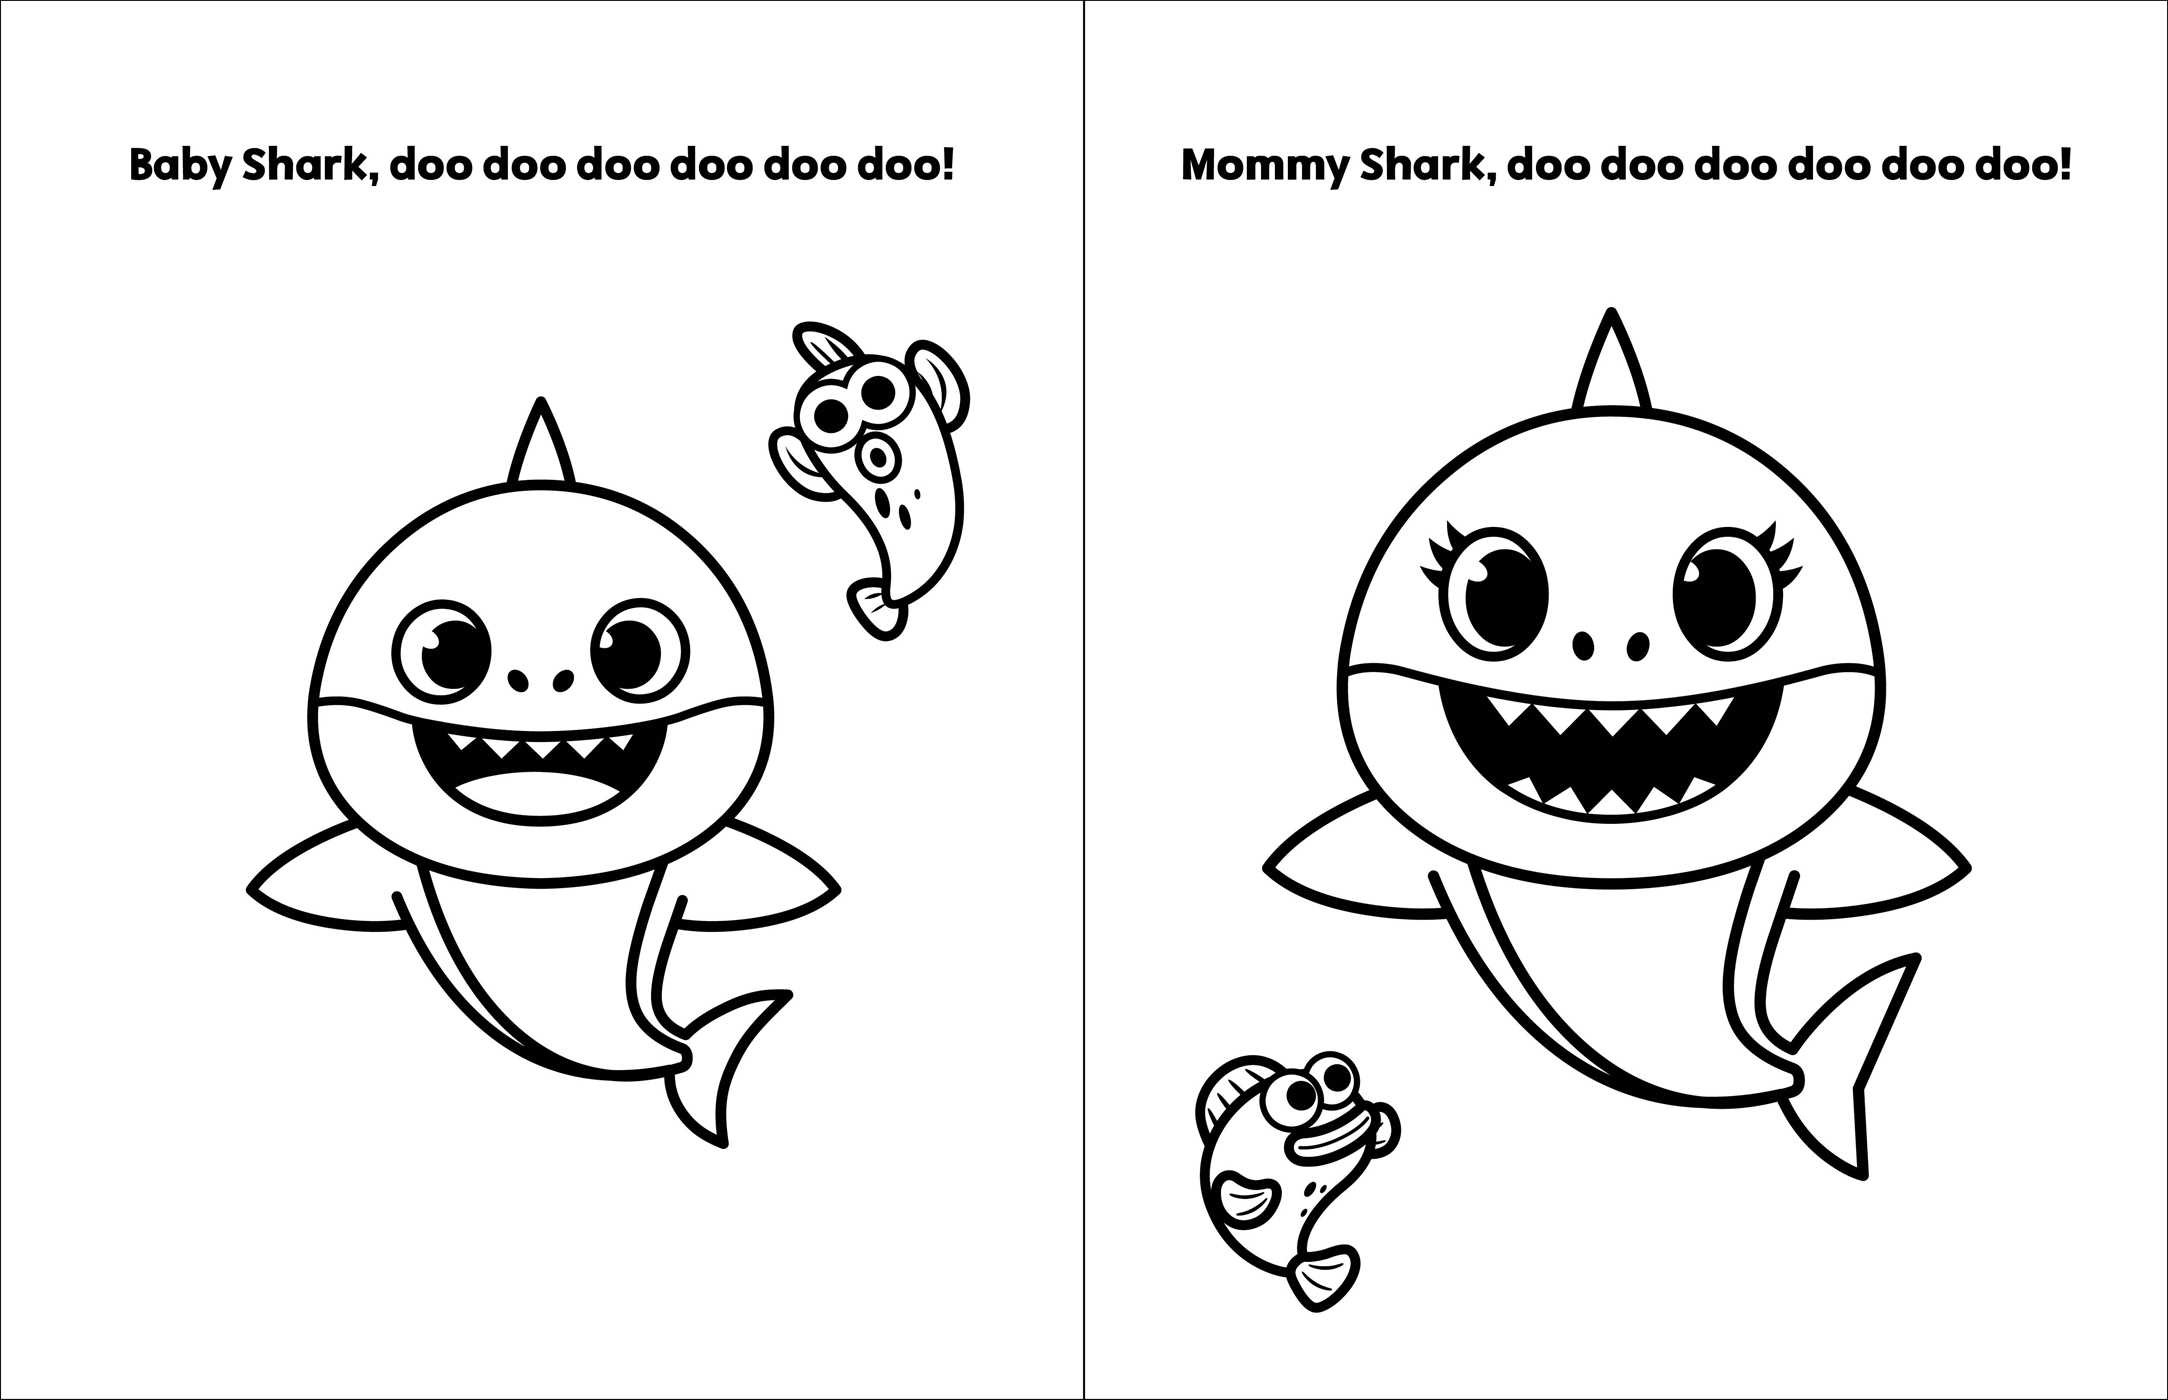 baby shark coloring images baby shark printable coloring pages get coloring pages shark images baby coloring